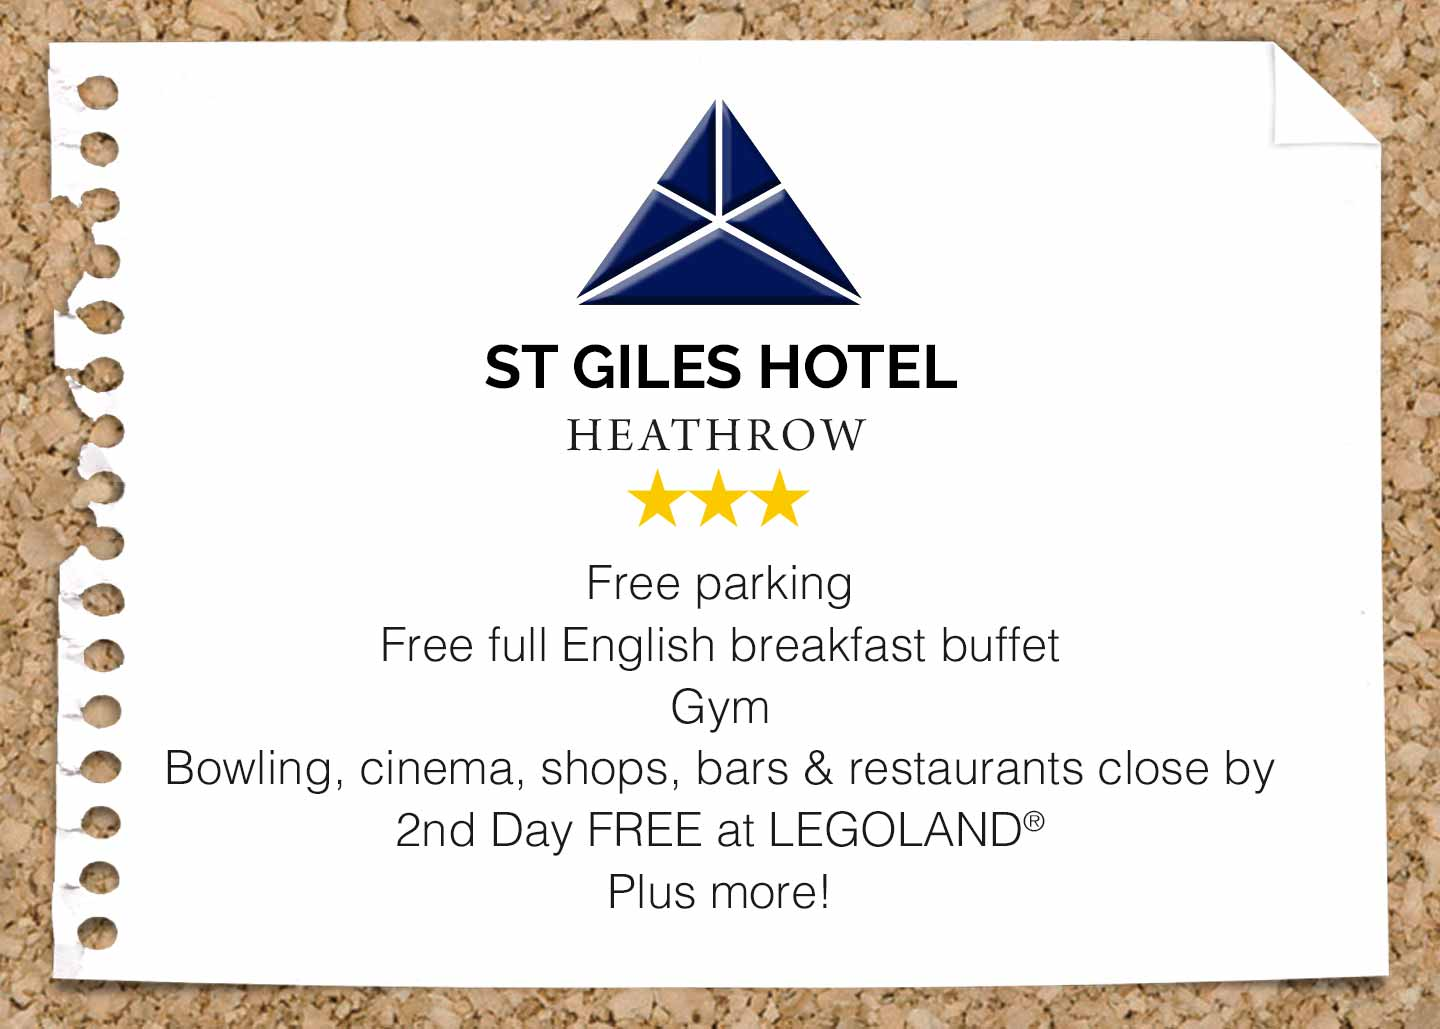 St Giles Heathrow Hotel